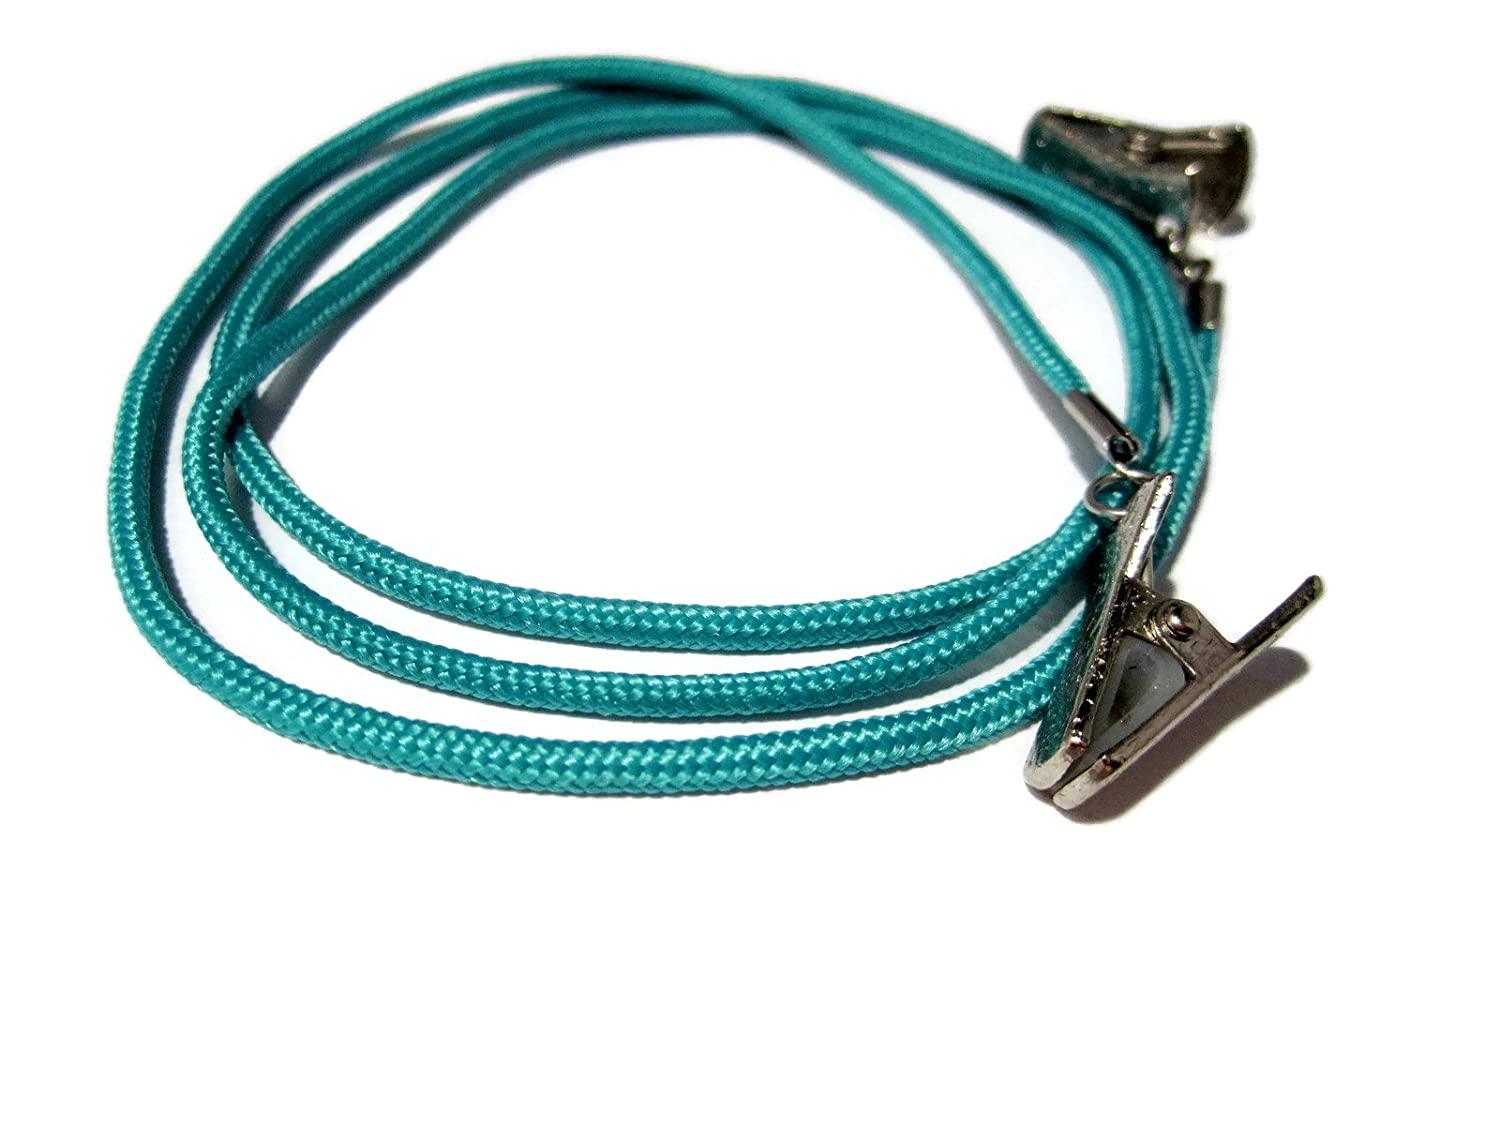 ATLanyards Teal Blue Paracord Eyeglass Lanyard, Eyeglass Holder with Silver Clips, 350